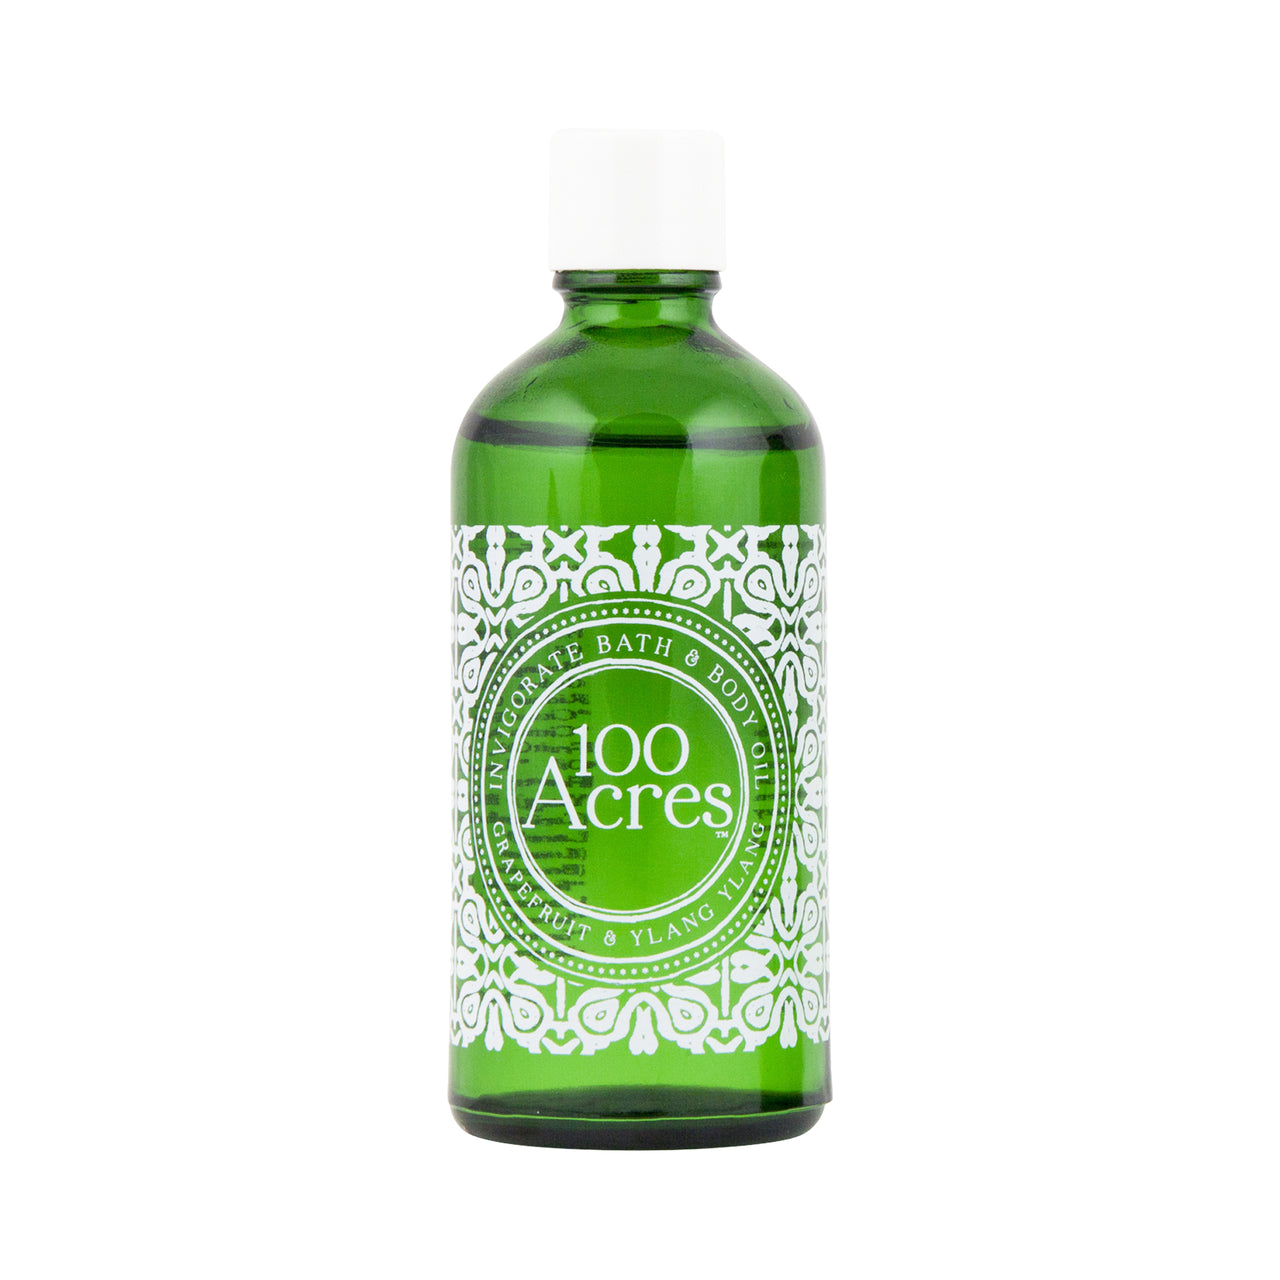 100 Acres Invigorate Bath & Body Oil 100ml - 100% Natural Ingredients & Essential Oils | 100 Acres Apothecary